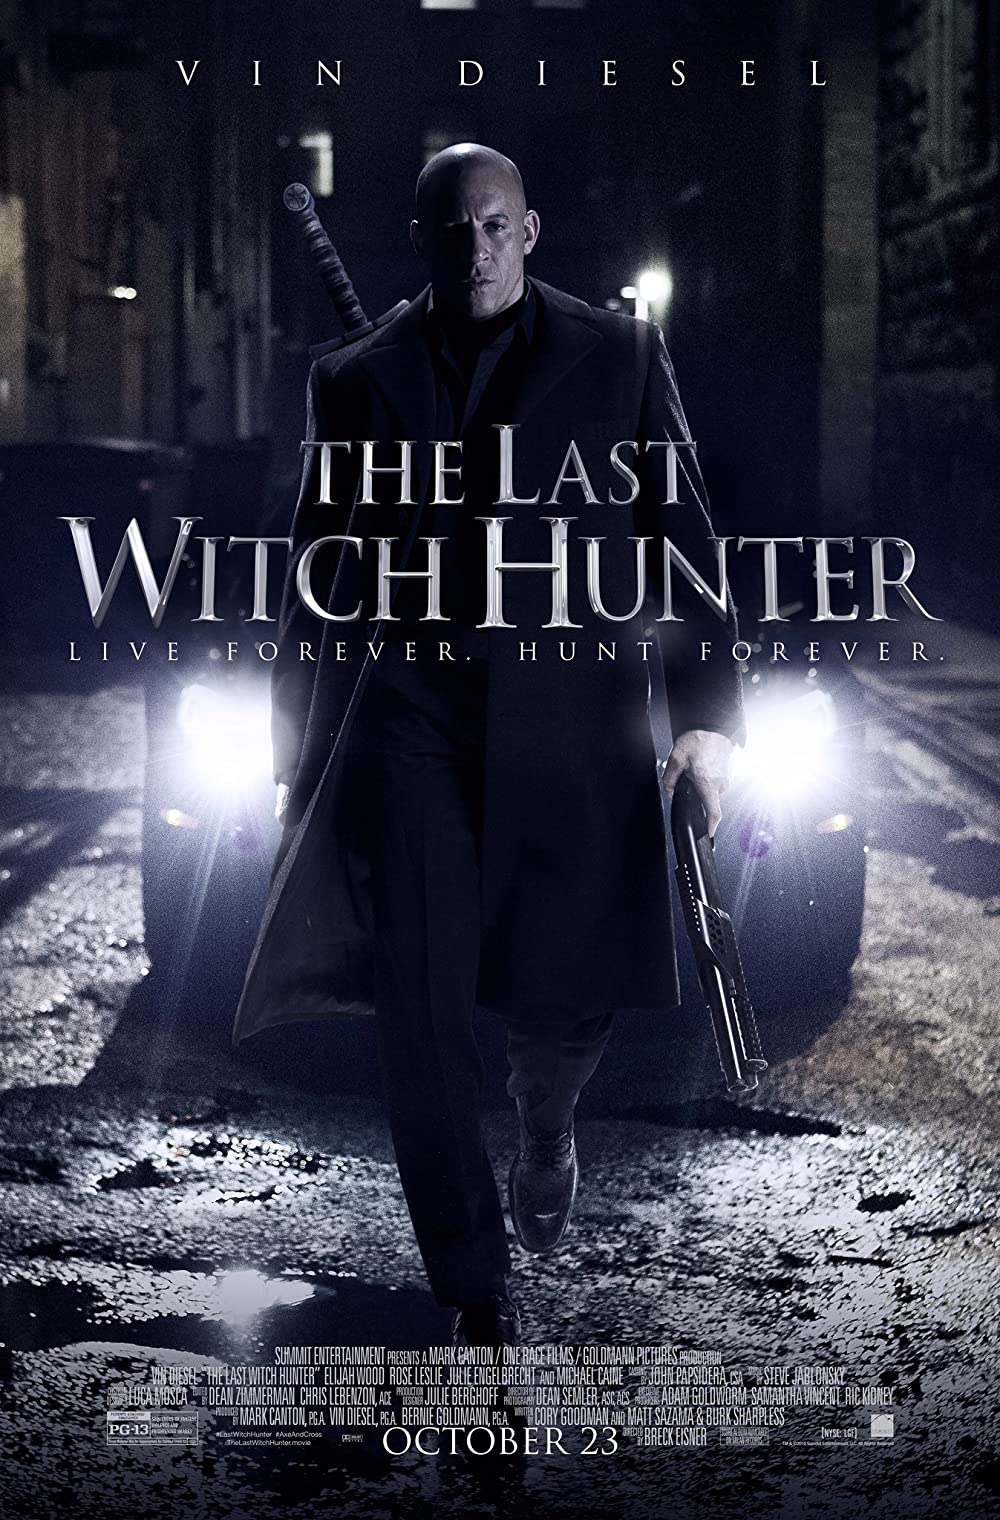 The Last Witch Hunter 2015 Hindi Dual Audio 1080p BluRay ESub 1820MB Download